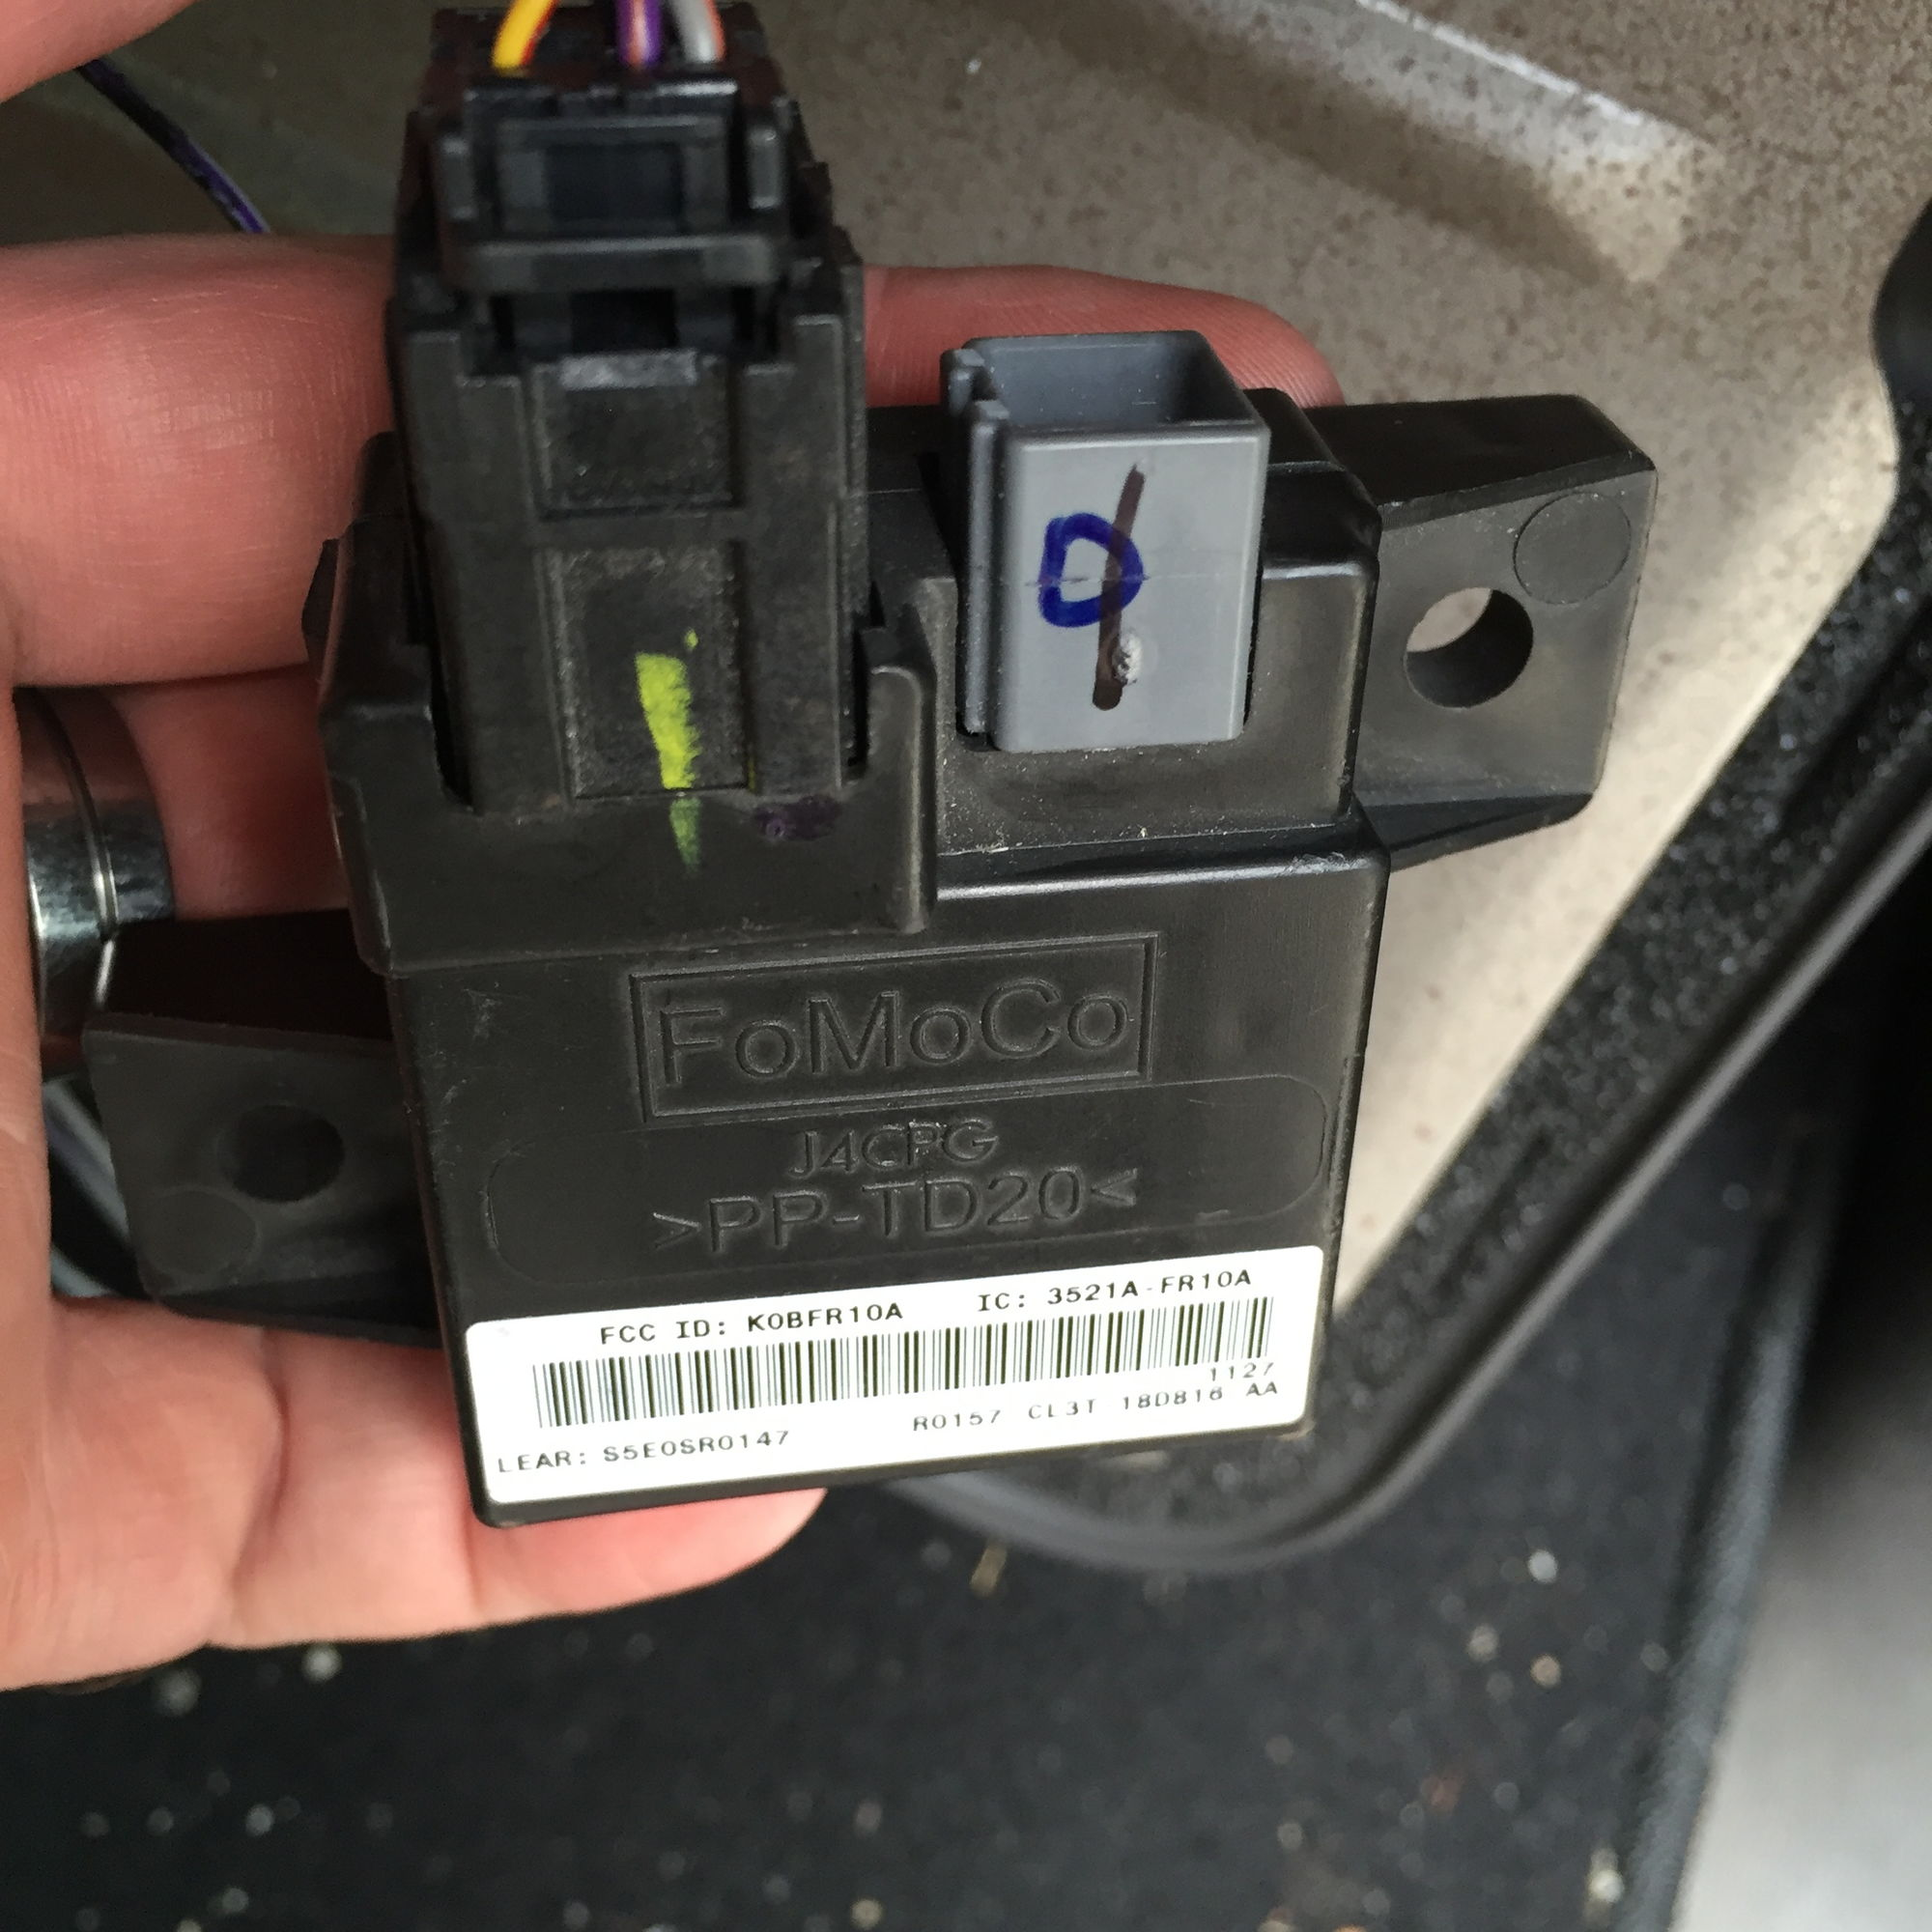 2010 ford explorer wiring diagram enphase m215 2011 f150 tpms antenna? - truck enthusiasts forums